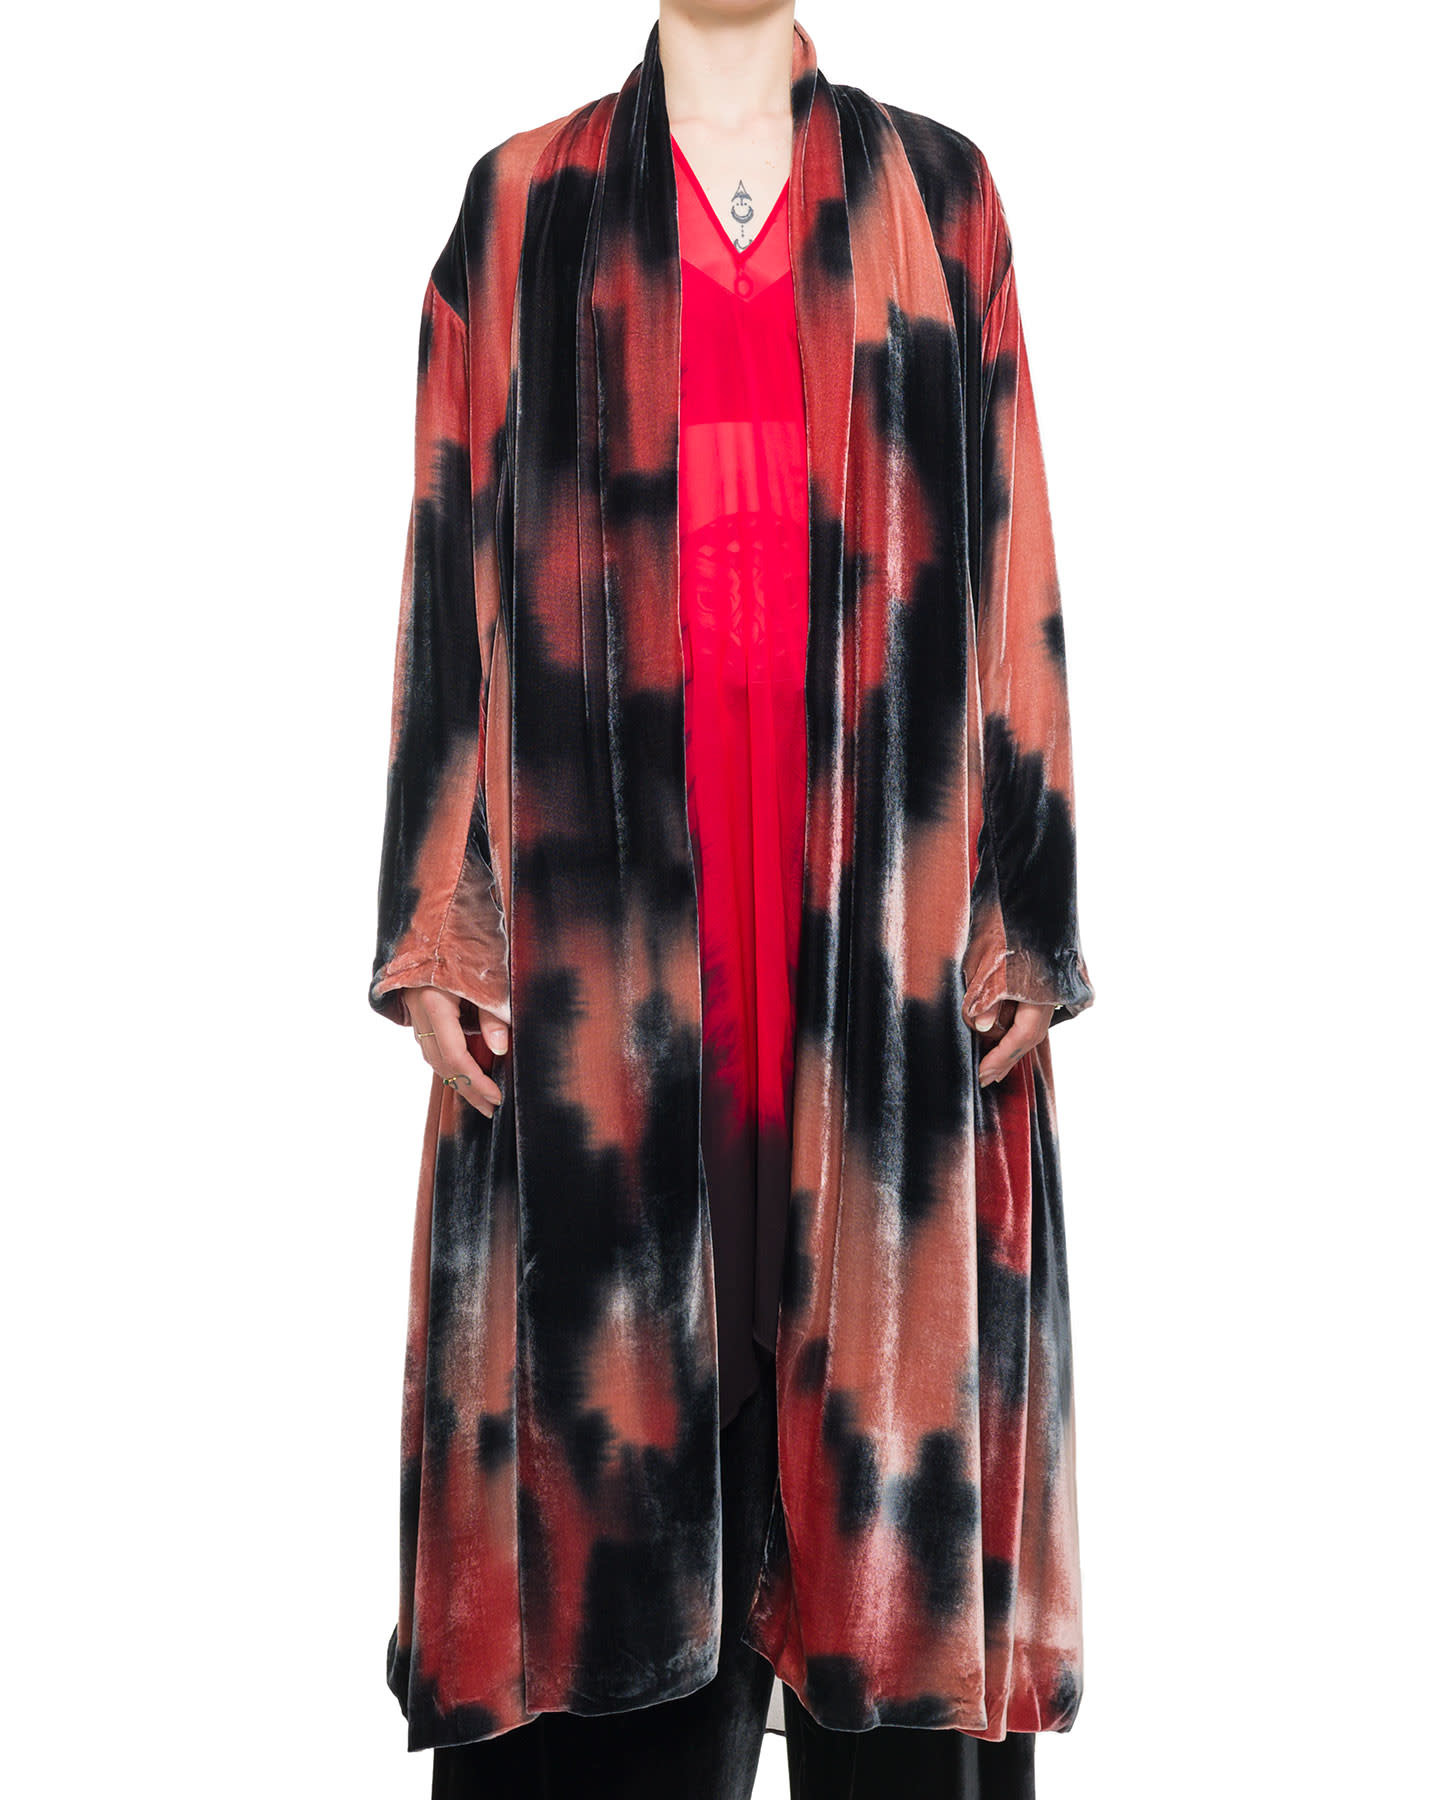 DRESSING GOWN DUSTER